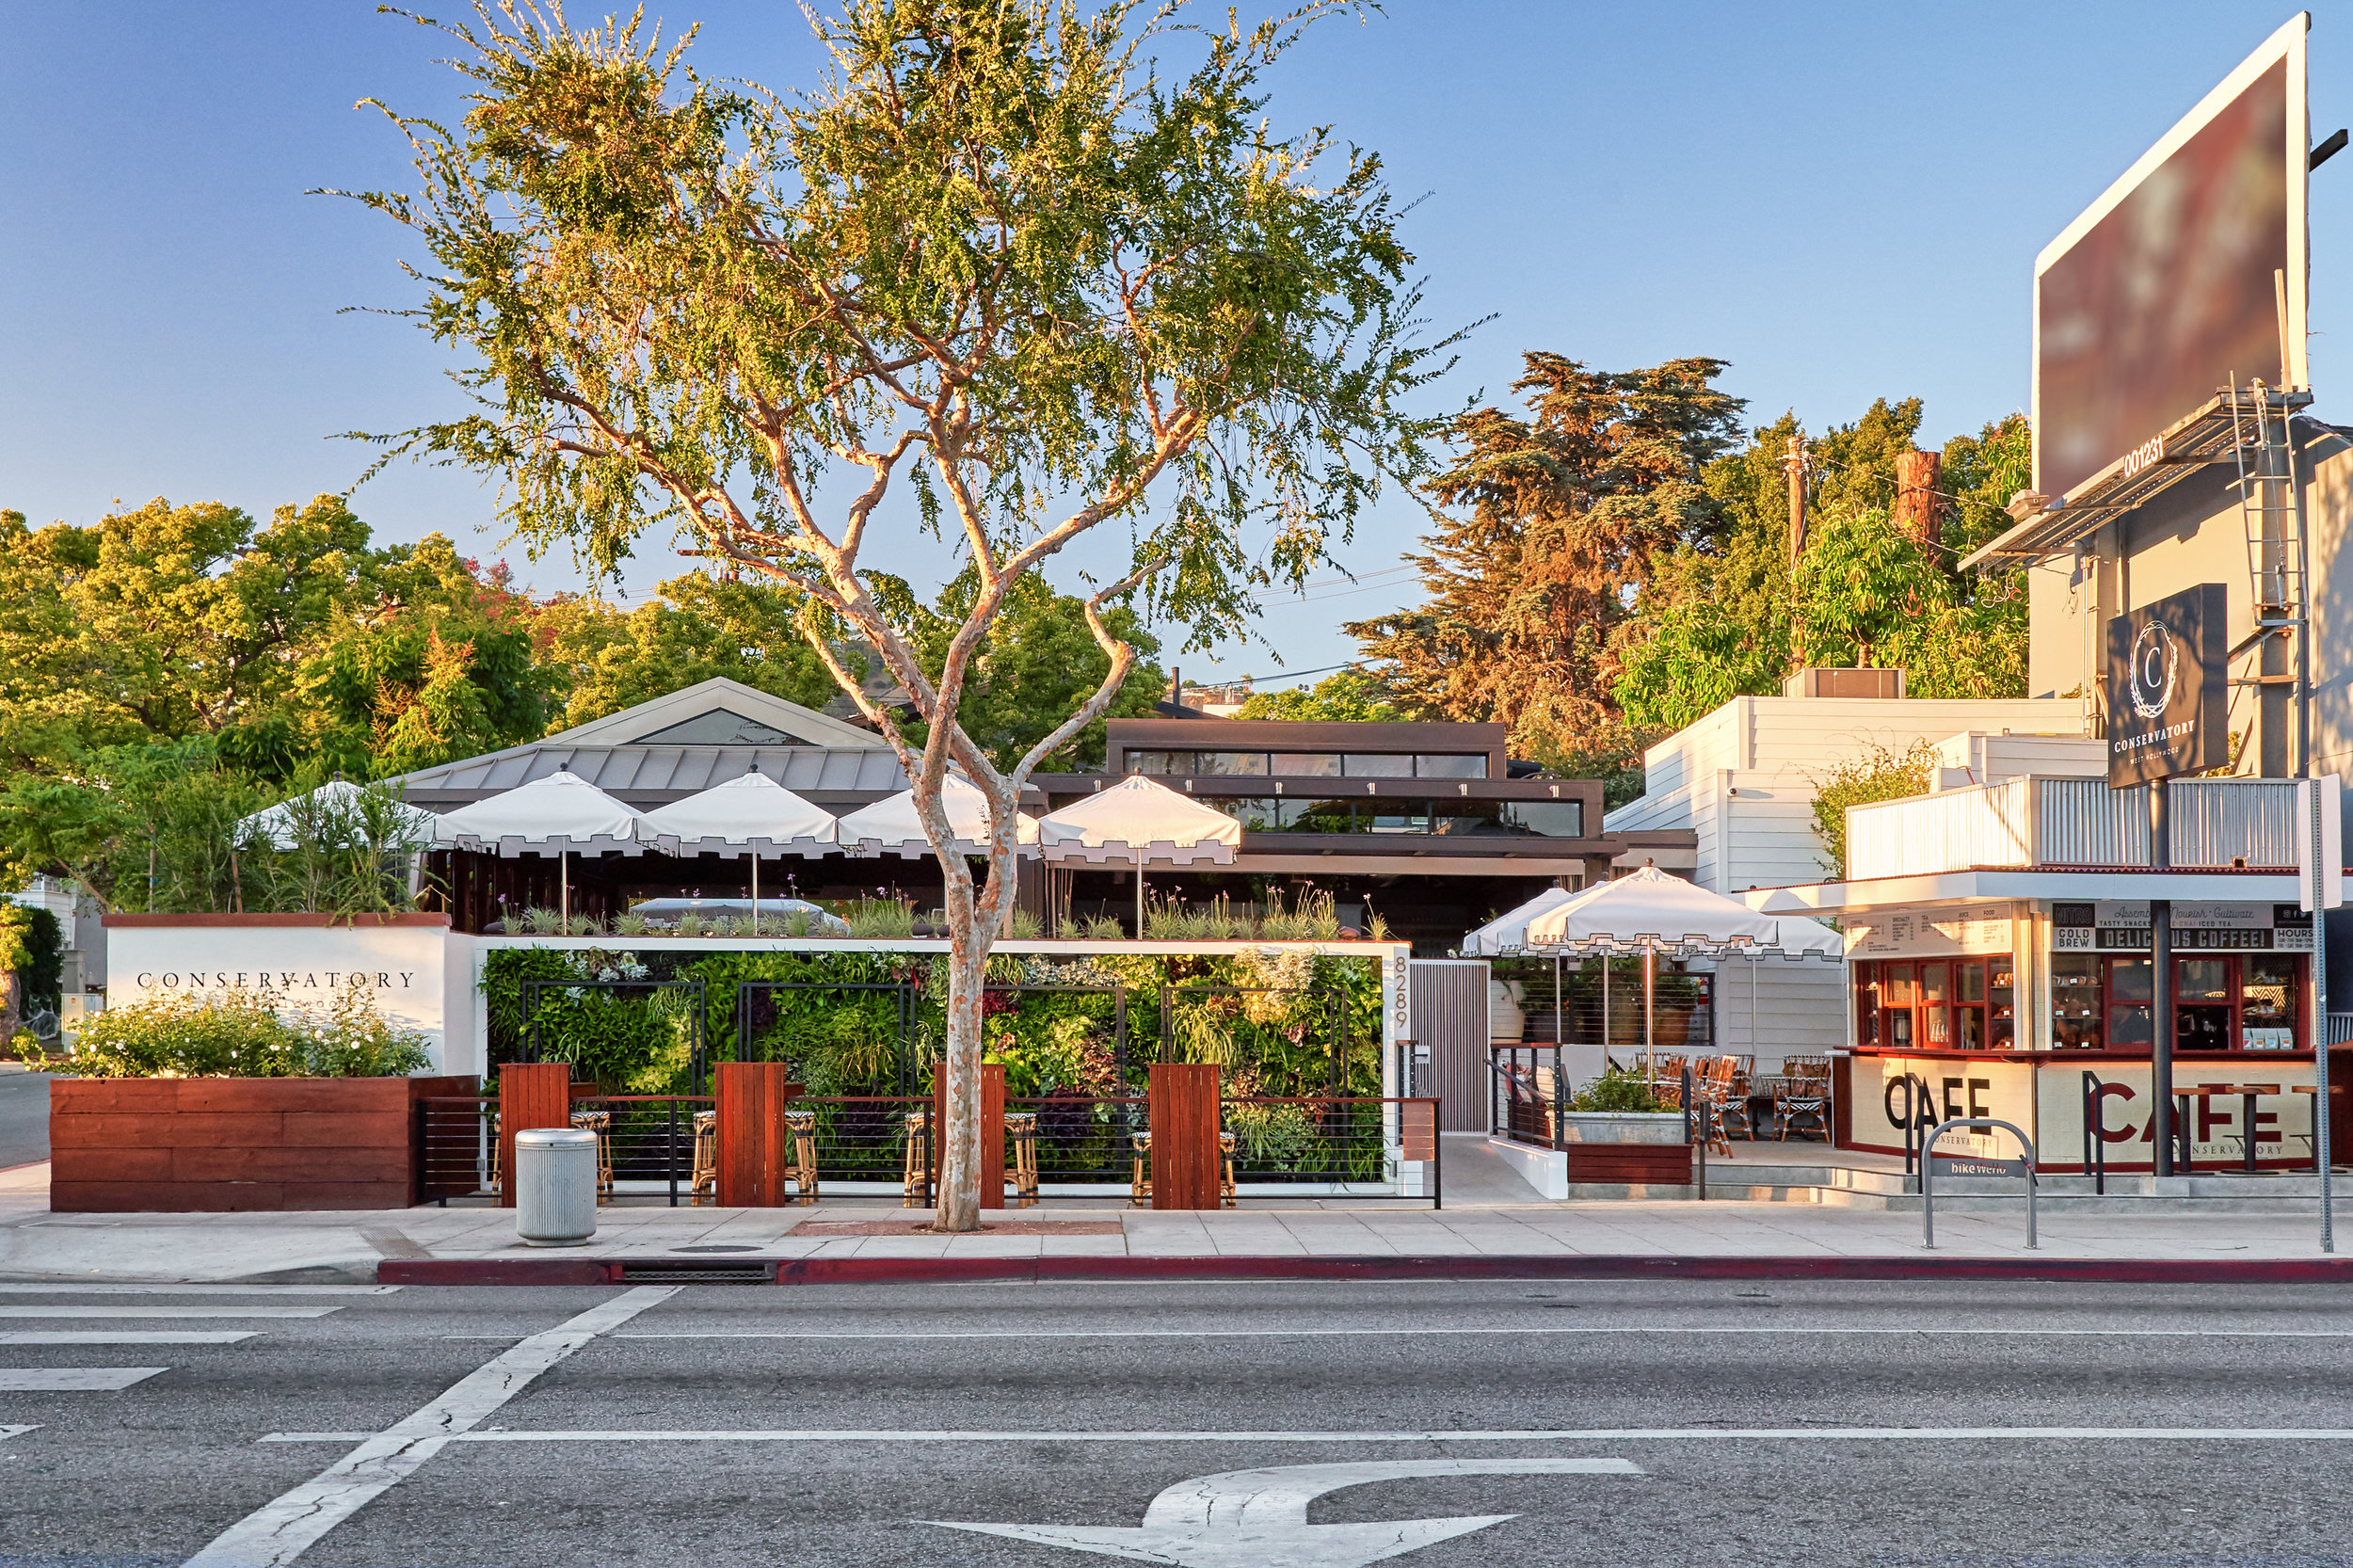 Conservatory restaurant from Santa Monica Blvd.